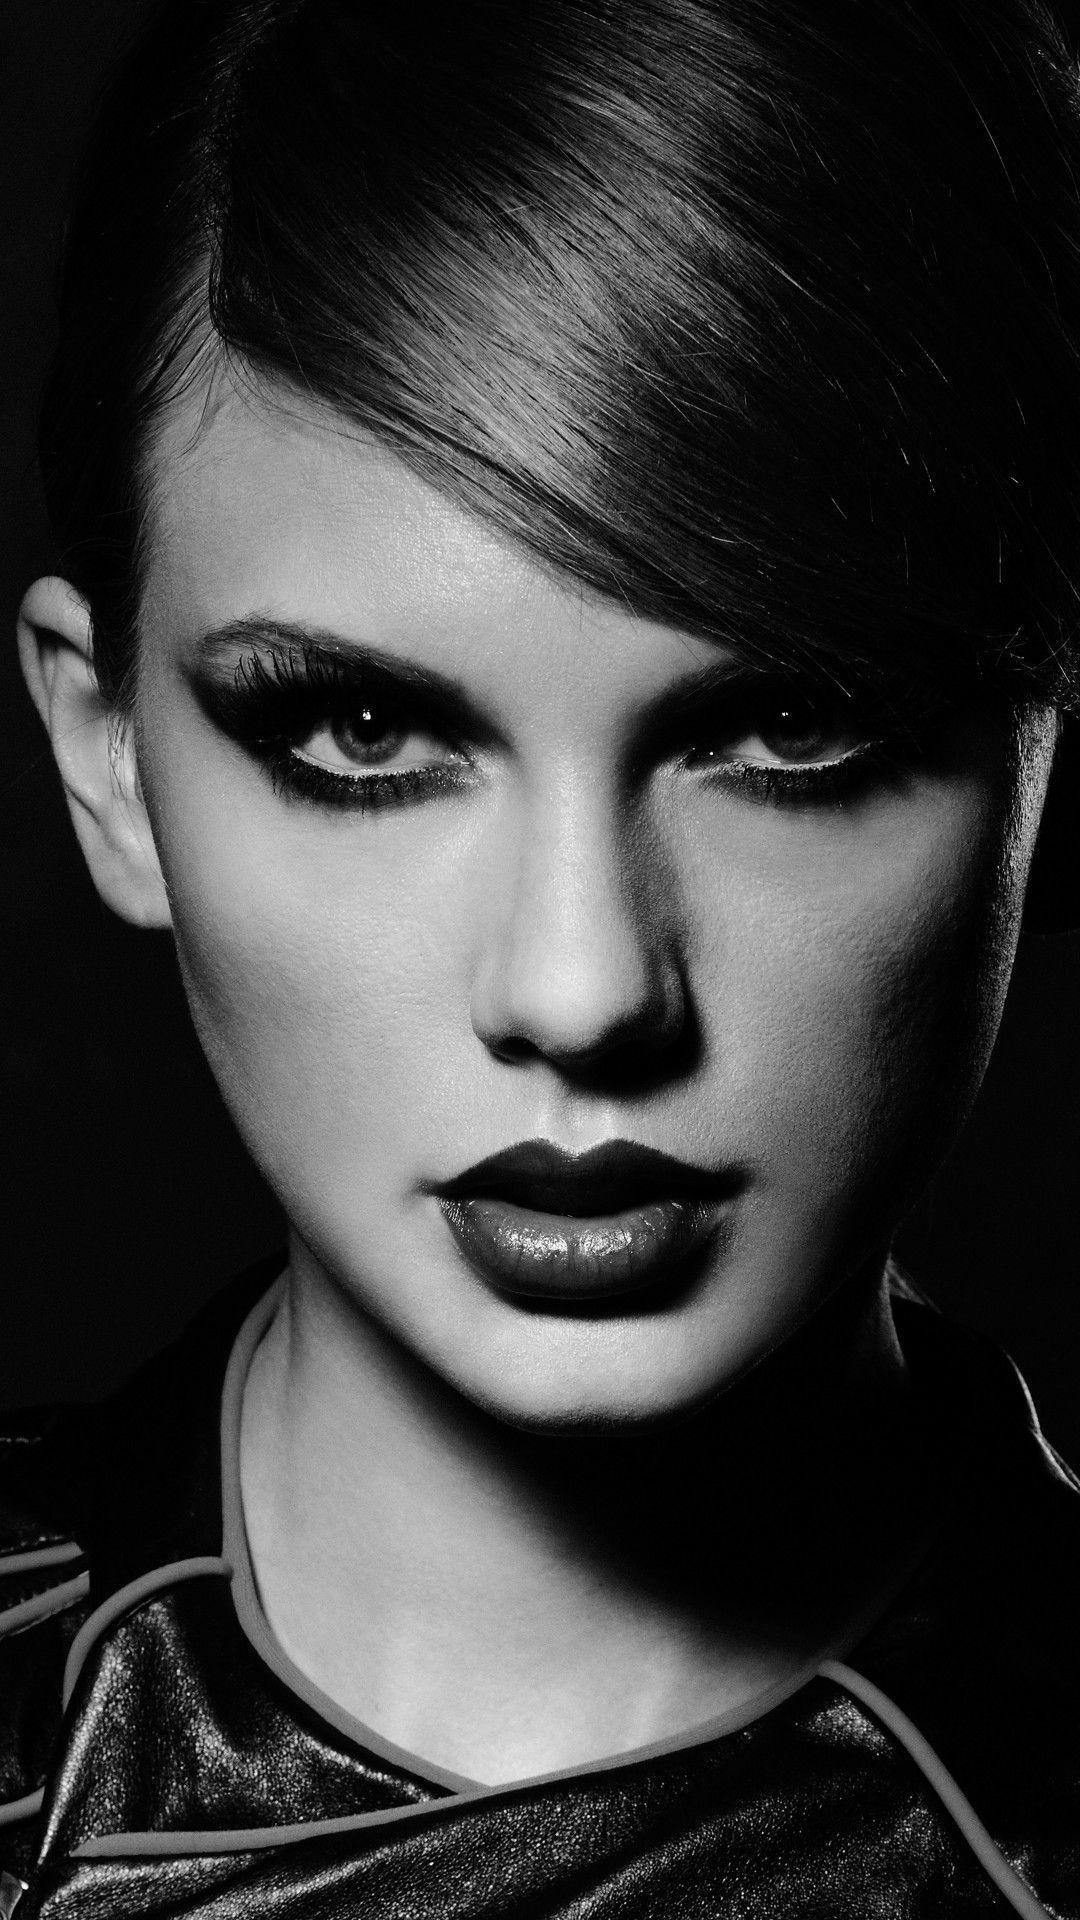 Taylor Swift Hd Wallpapers For Android Apk Download